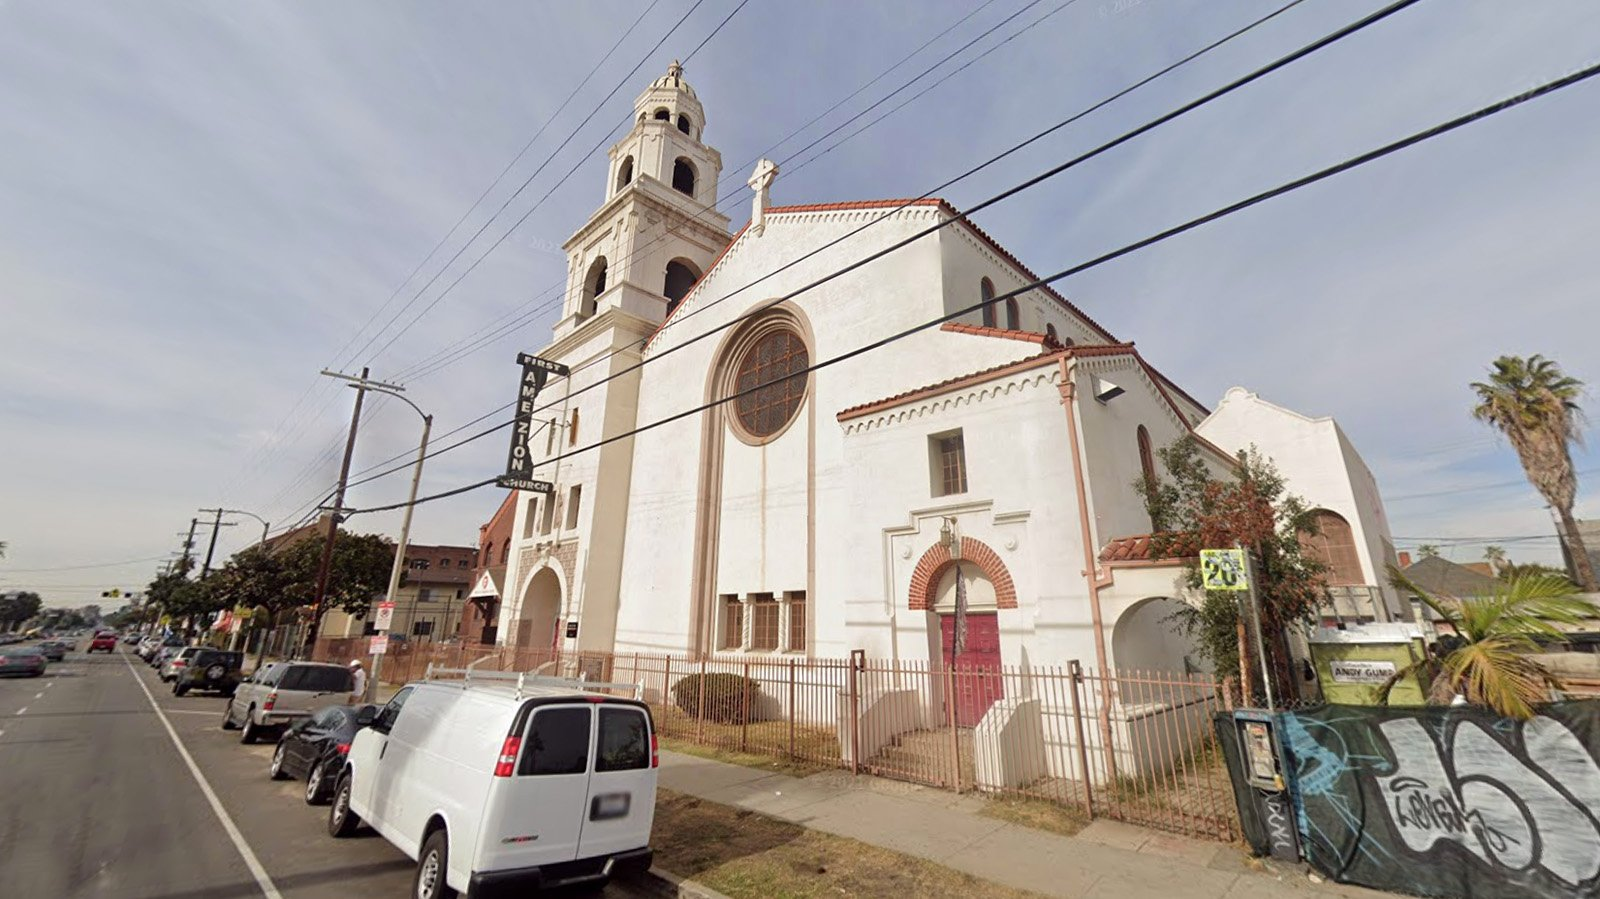 First AME Zion Church of Los Angeles is tied up in the U.S. Bankruptcy Court of the Eastern District of California. Image courtesy of Google Maps